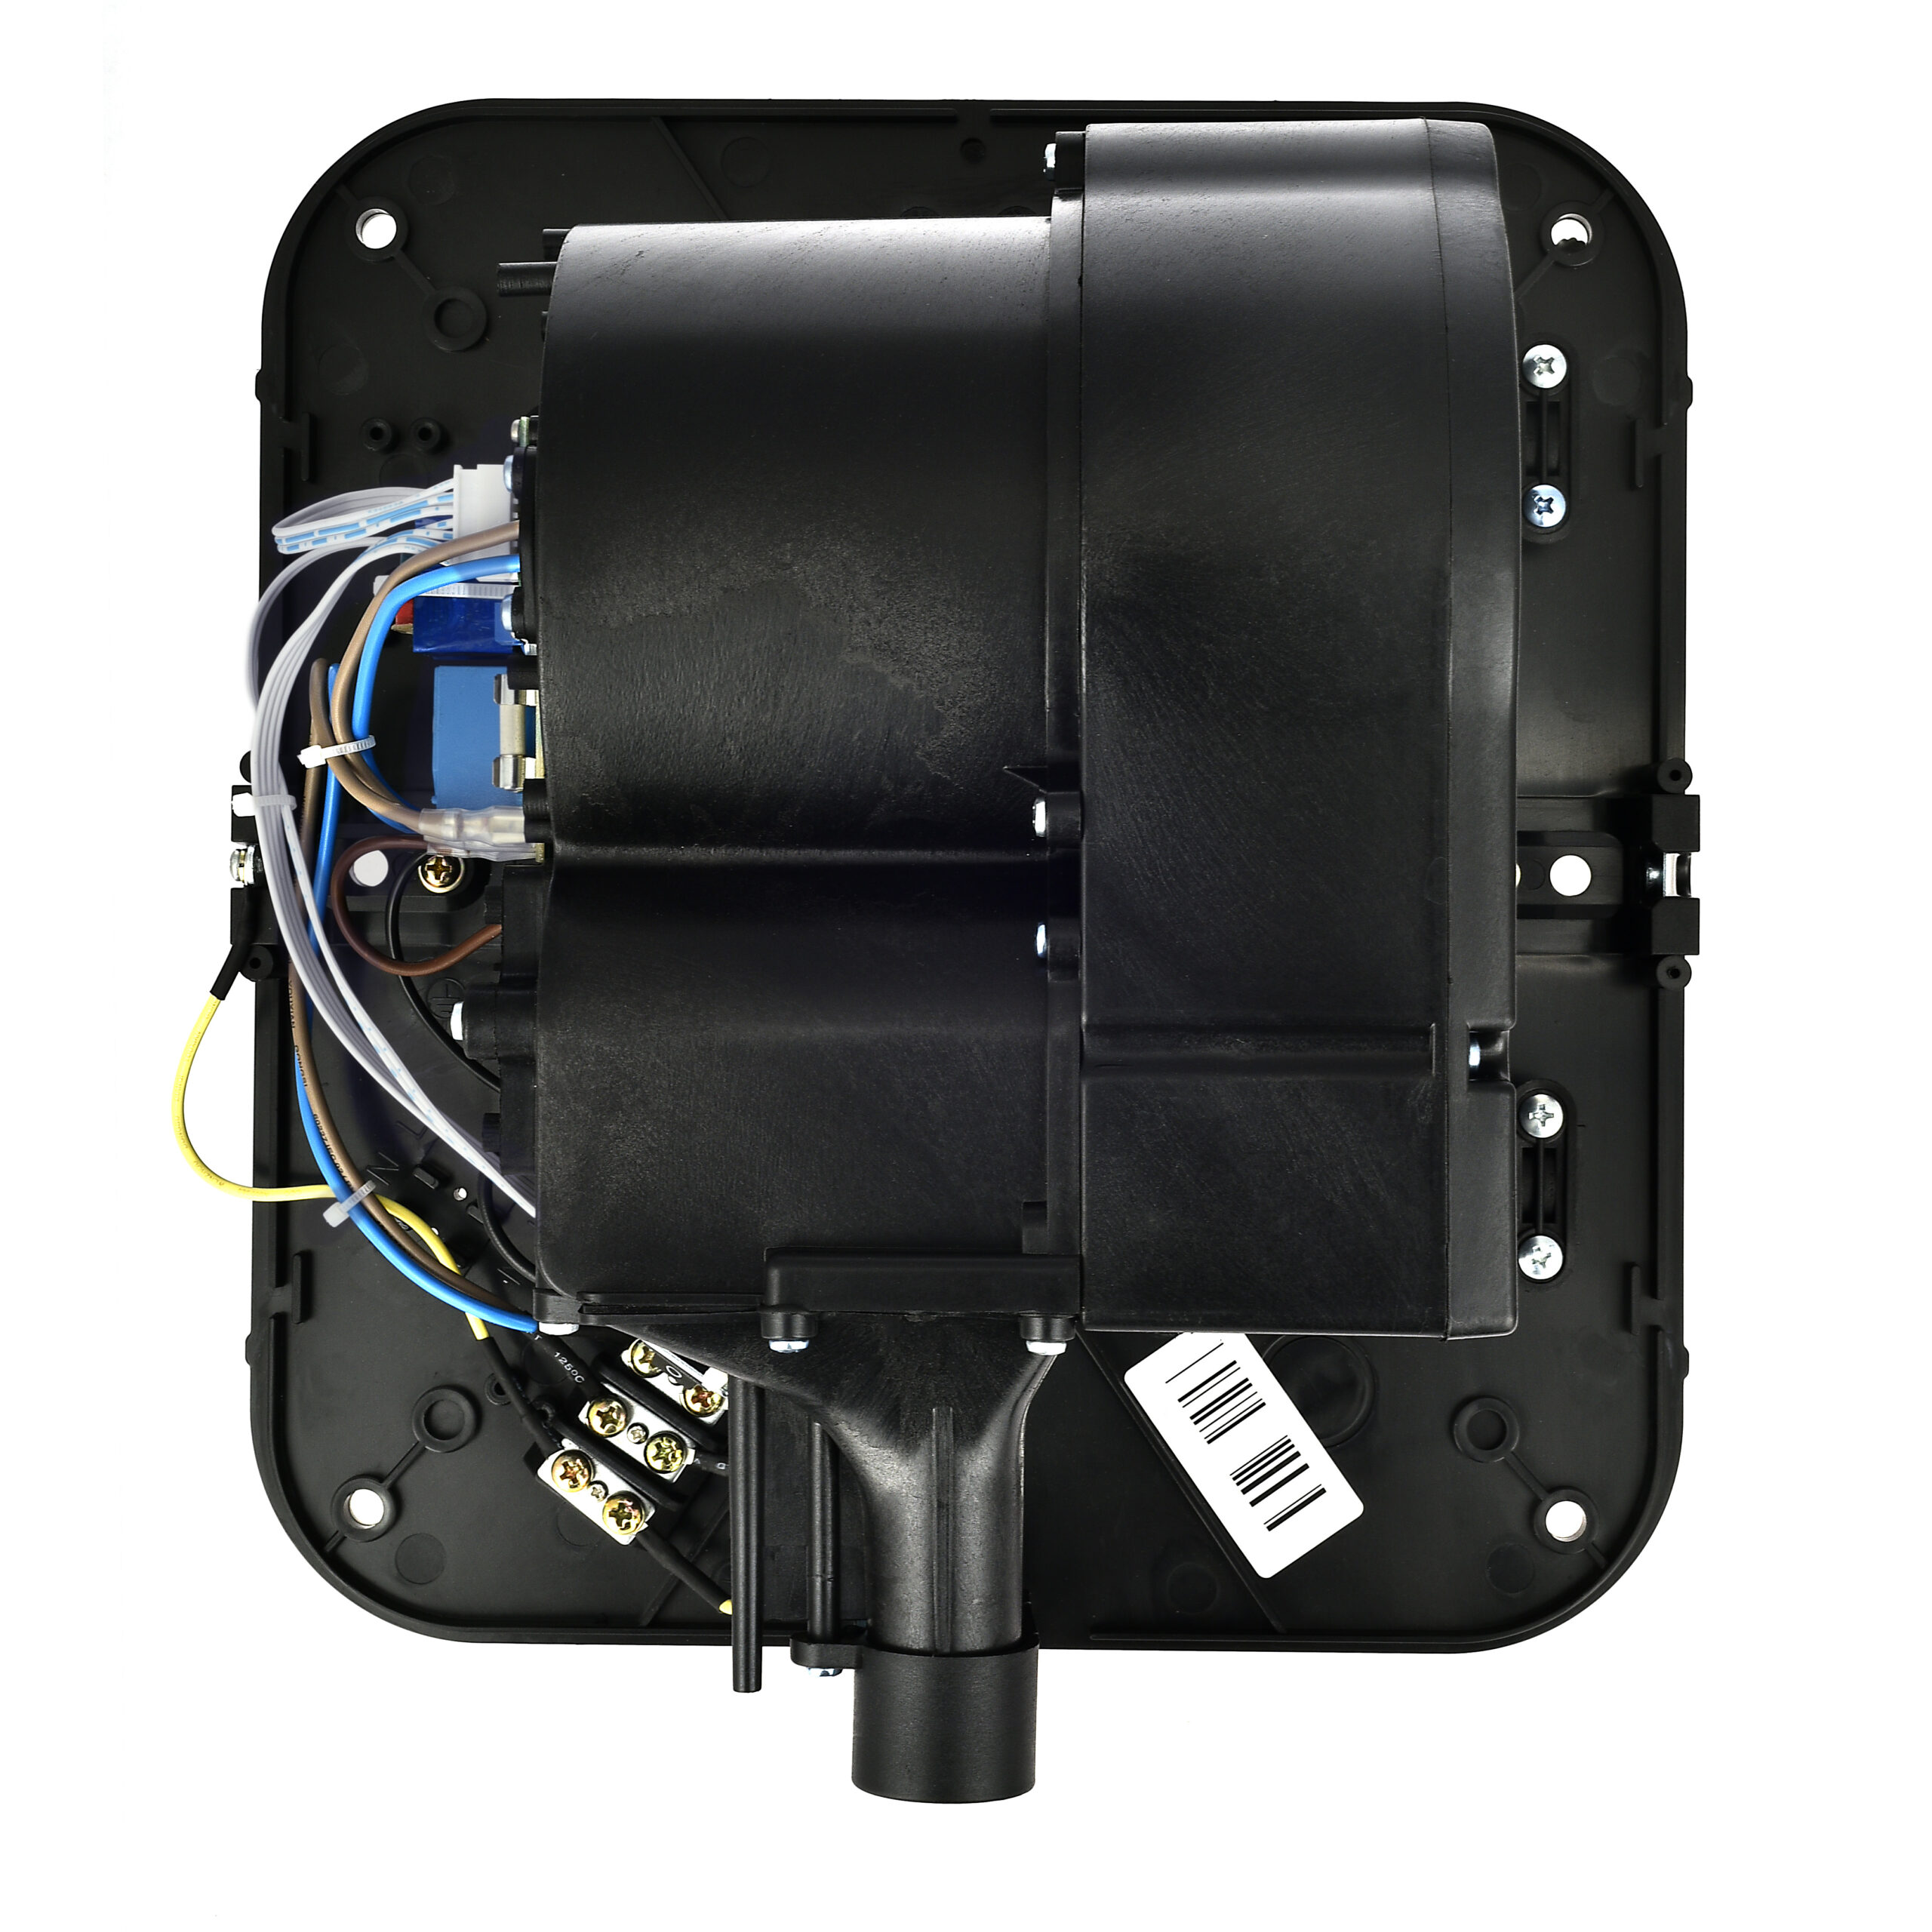 Alpine Industries Hemlock Hand Dryer Base, Black, 110/120V